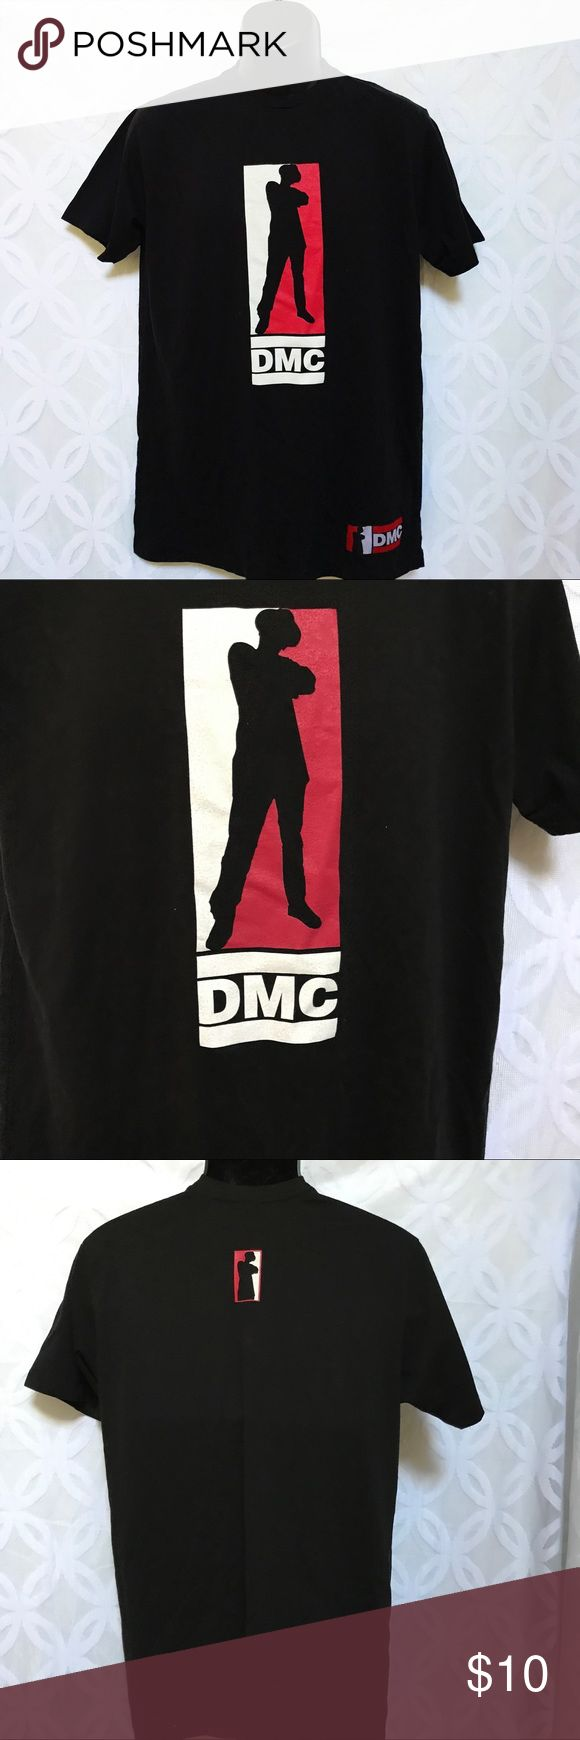 "Run D.M.C. Darryl McDaniels Black Tee Run D.M.C. Darryl McDaniels Black Tee NWOT.                               Measurements Laying Flat Size 🔹L Armpit to Armpit 🔹22"" Shoulder to Hem 🔹31"" Bundle to Save 🤓 Sorry NO outside transactions 🚫 NO trades 🚫 Reasonable Offers welcomed 👍 NO Low balling 👎 NO modeling 👎 NO Holds👎 All items from a pet 😼and Smoke Free Home  Happy Poshing 🤗 DMC Shirts Tees - Short Sleeve"